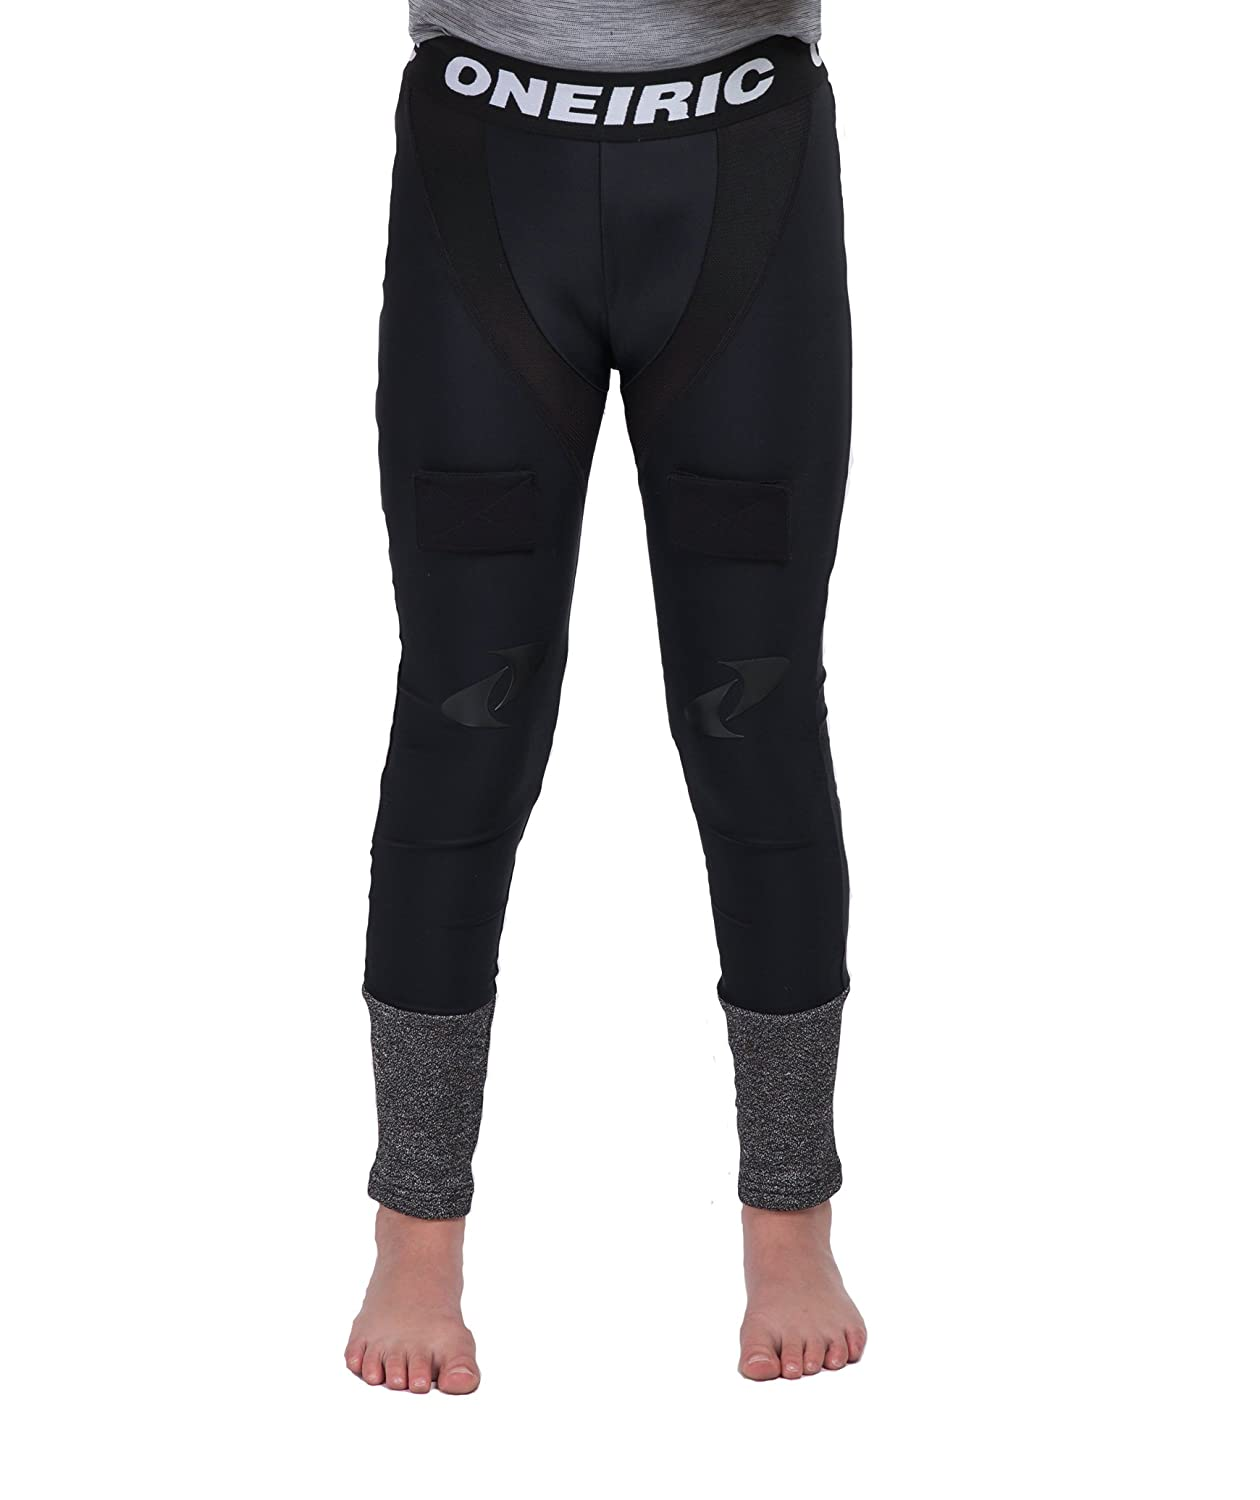 Oneiric Hockey Goalie Protective Jill Base Layer Pants For Youth Girls